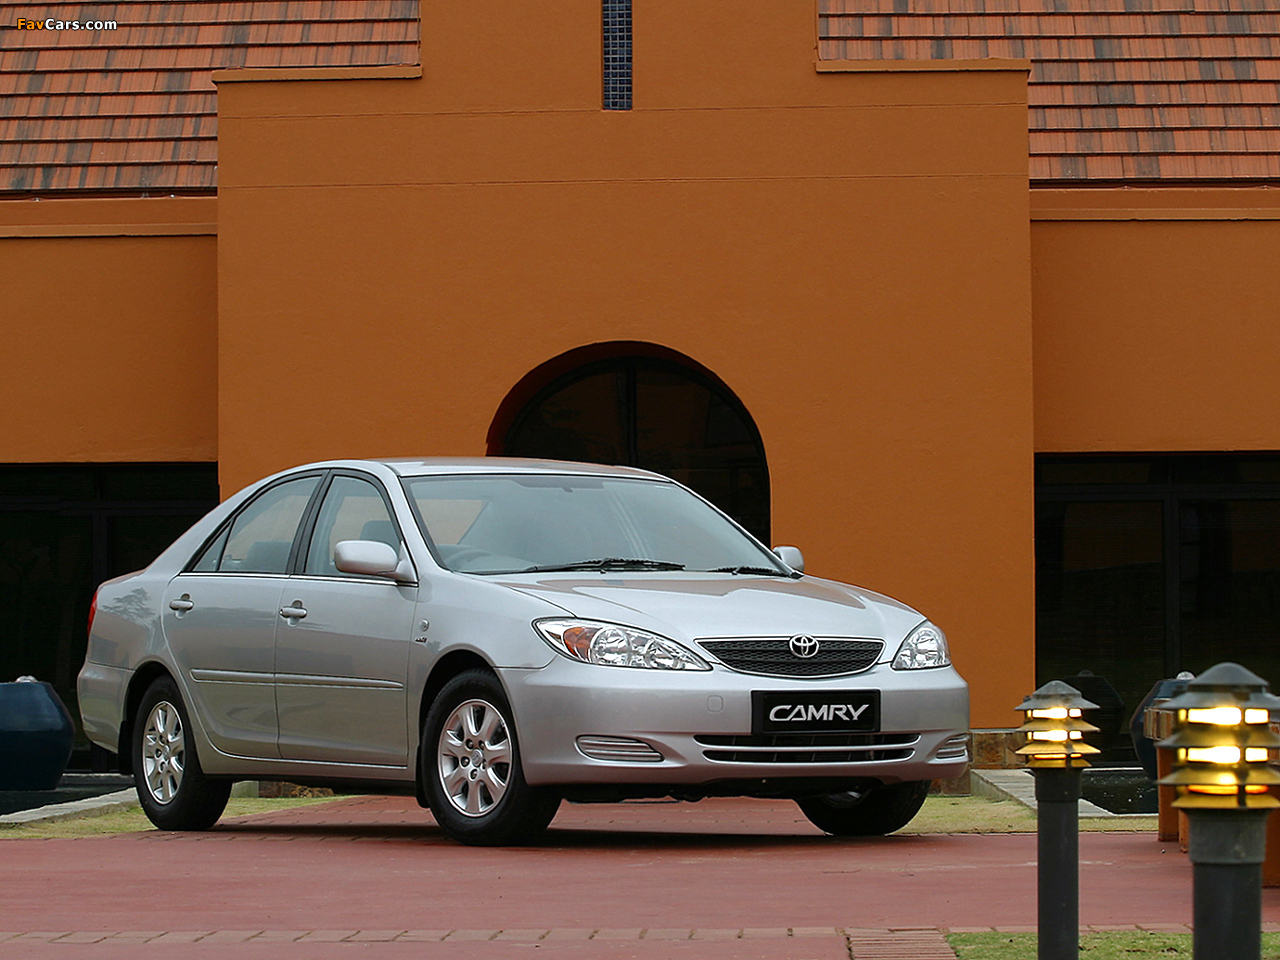 Toyota Camry acv 30 #11